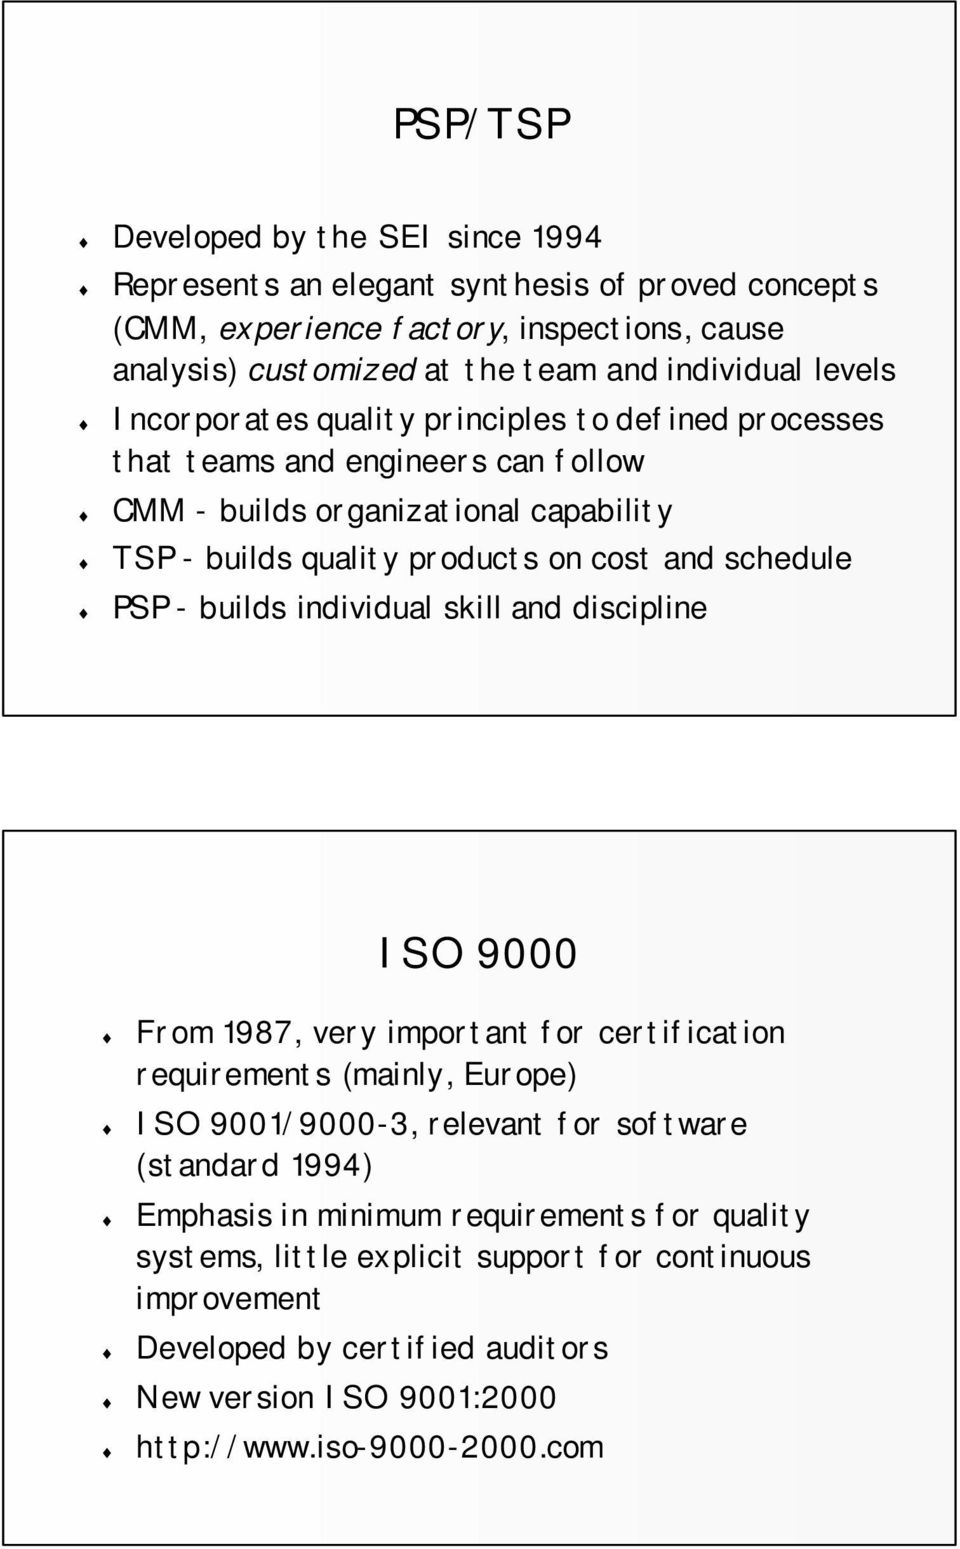 PSP - builds individual skill and discipline ISO 9000 From 1987, very important for certification requirements (mainly, Europe) ISO 9001/9000-3, relevant for software (standard 1994)